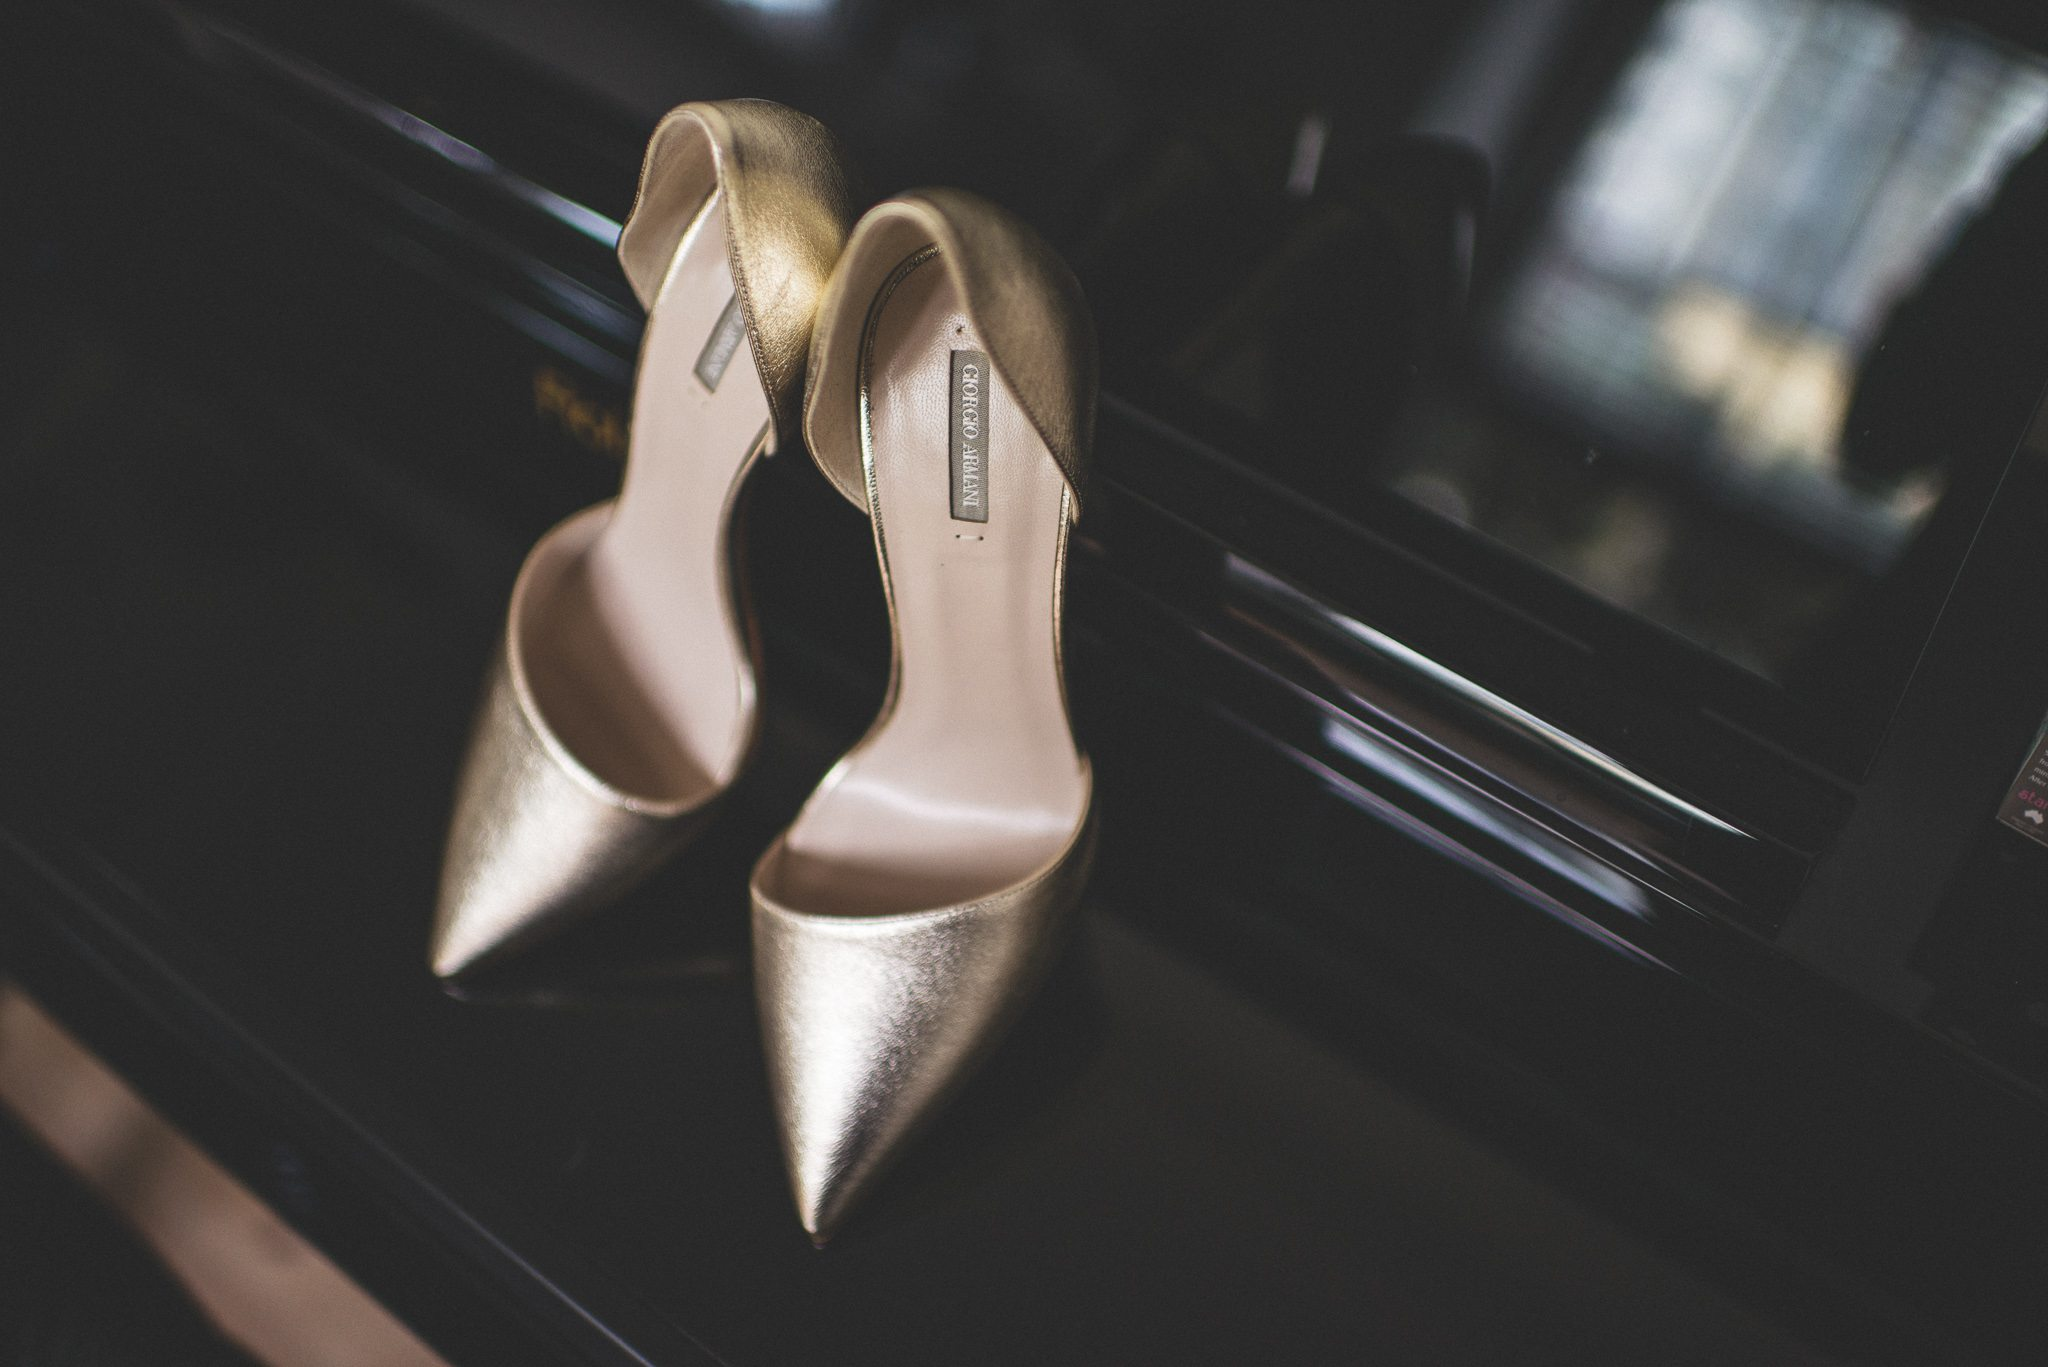 A pair of gold Armani stilettos are draped over a black piano